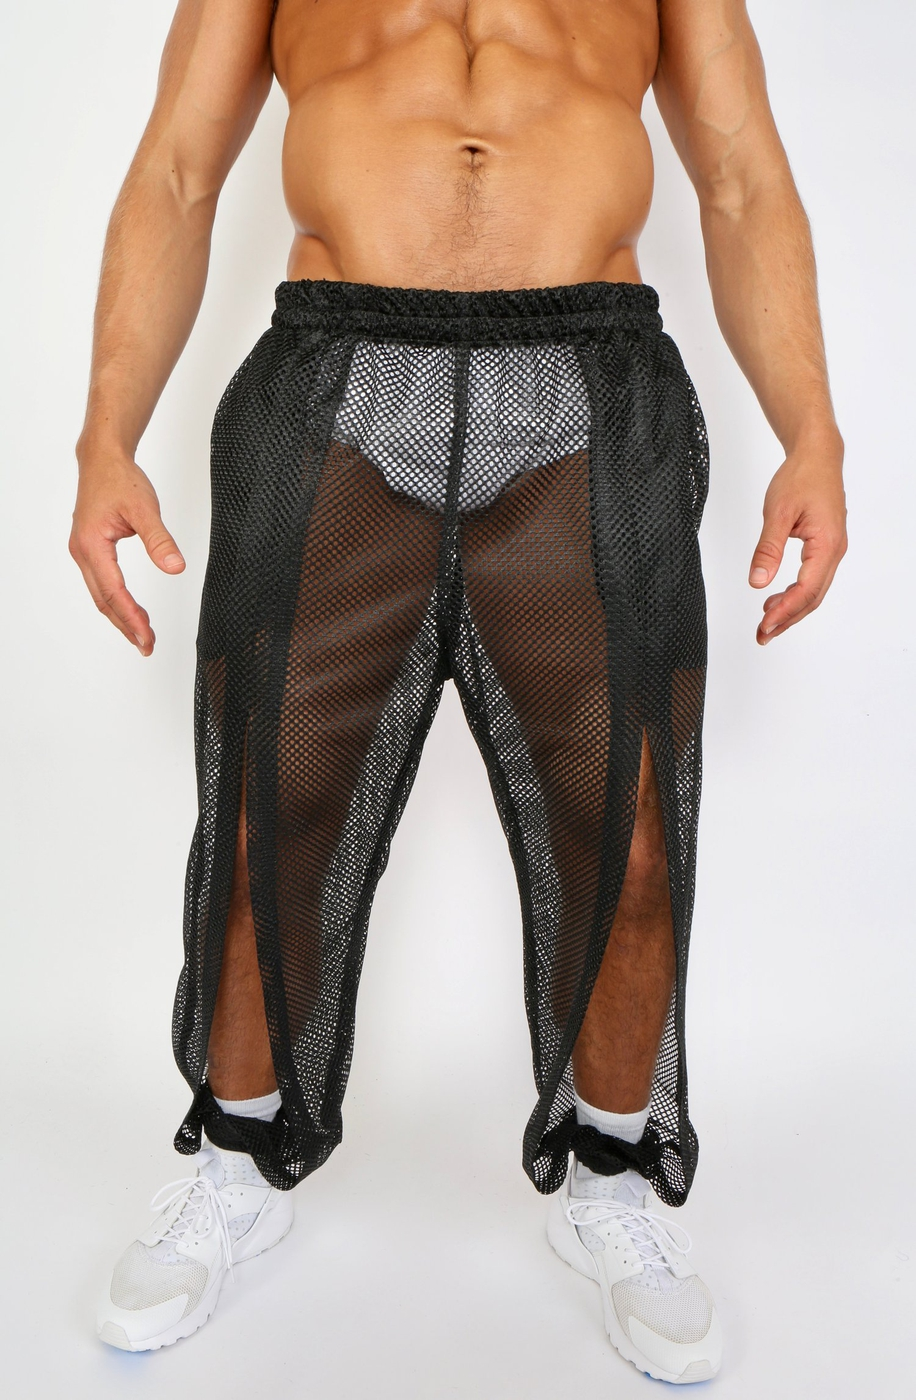 SPLIT PANT- BLACK - orangeshine.com